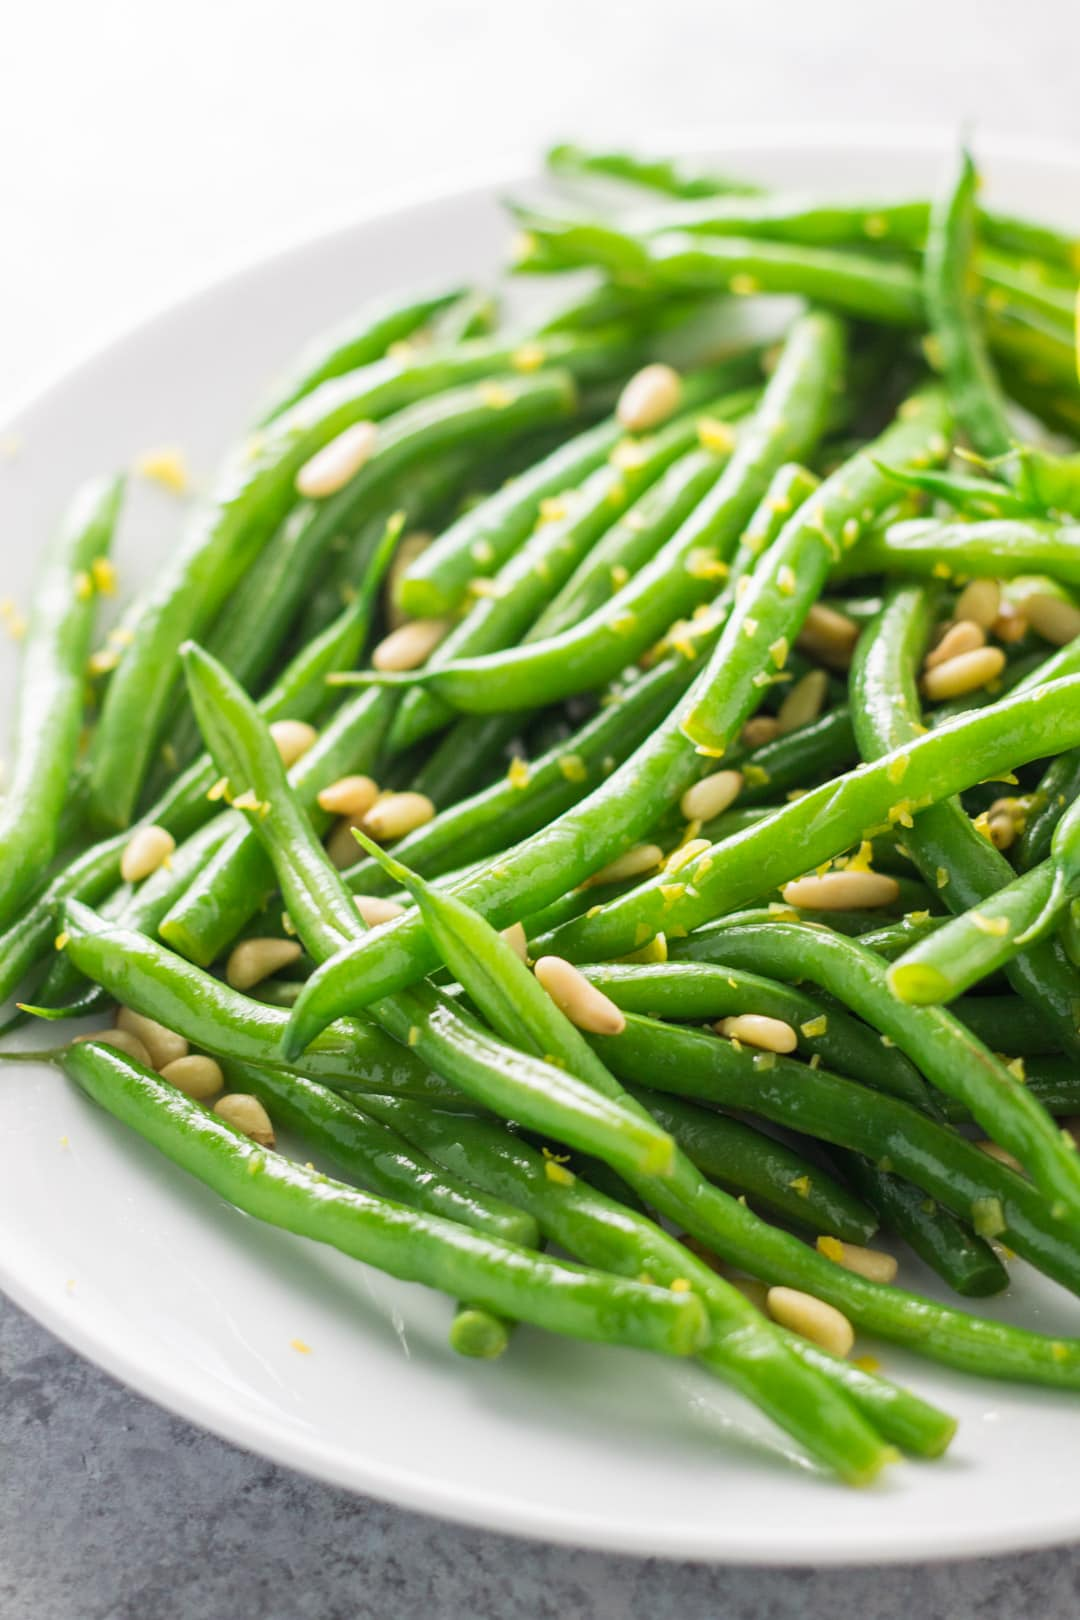 A close-up of green beans with a sprinkle of lemon zest and toasted pine nuts.